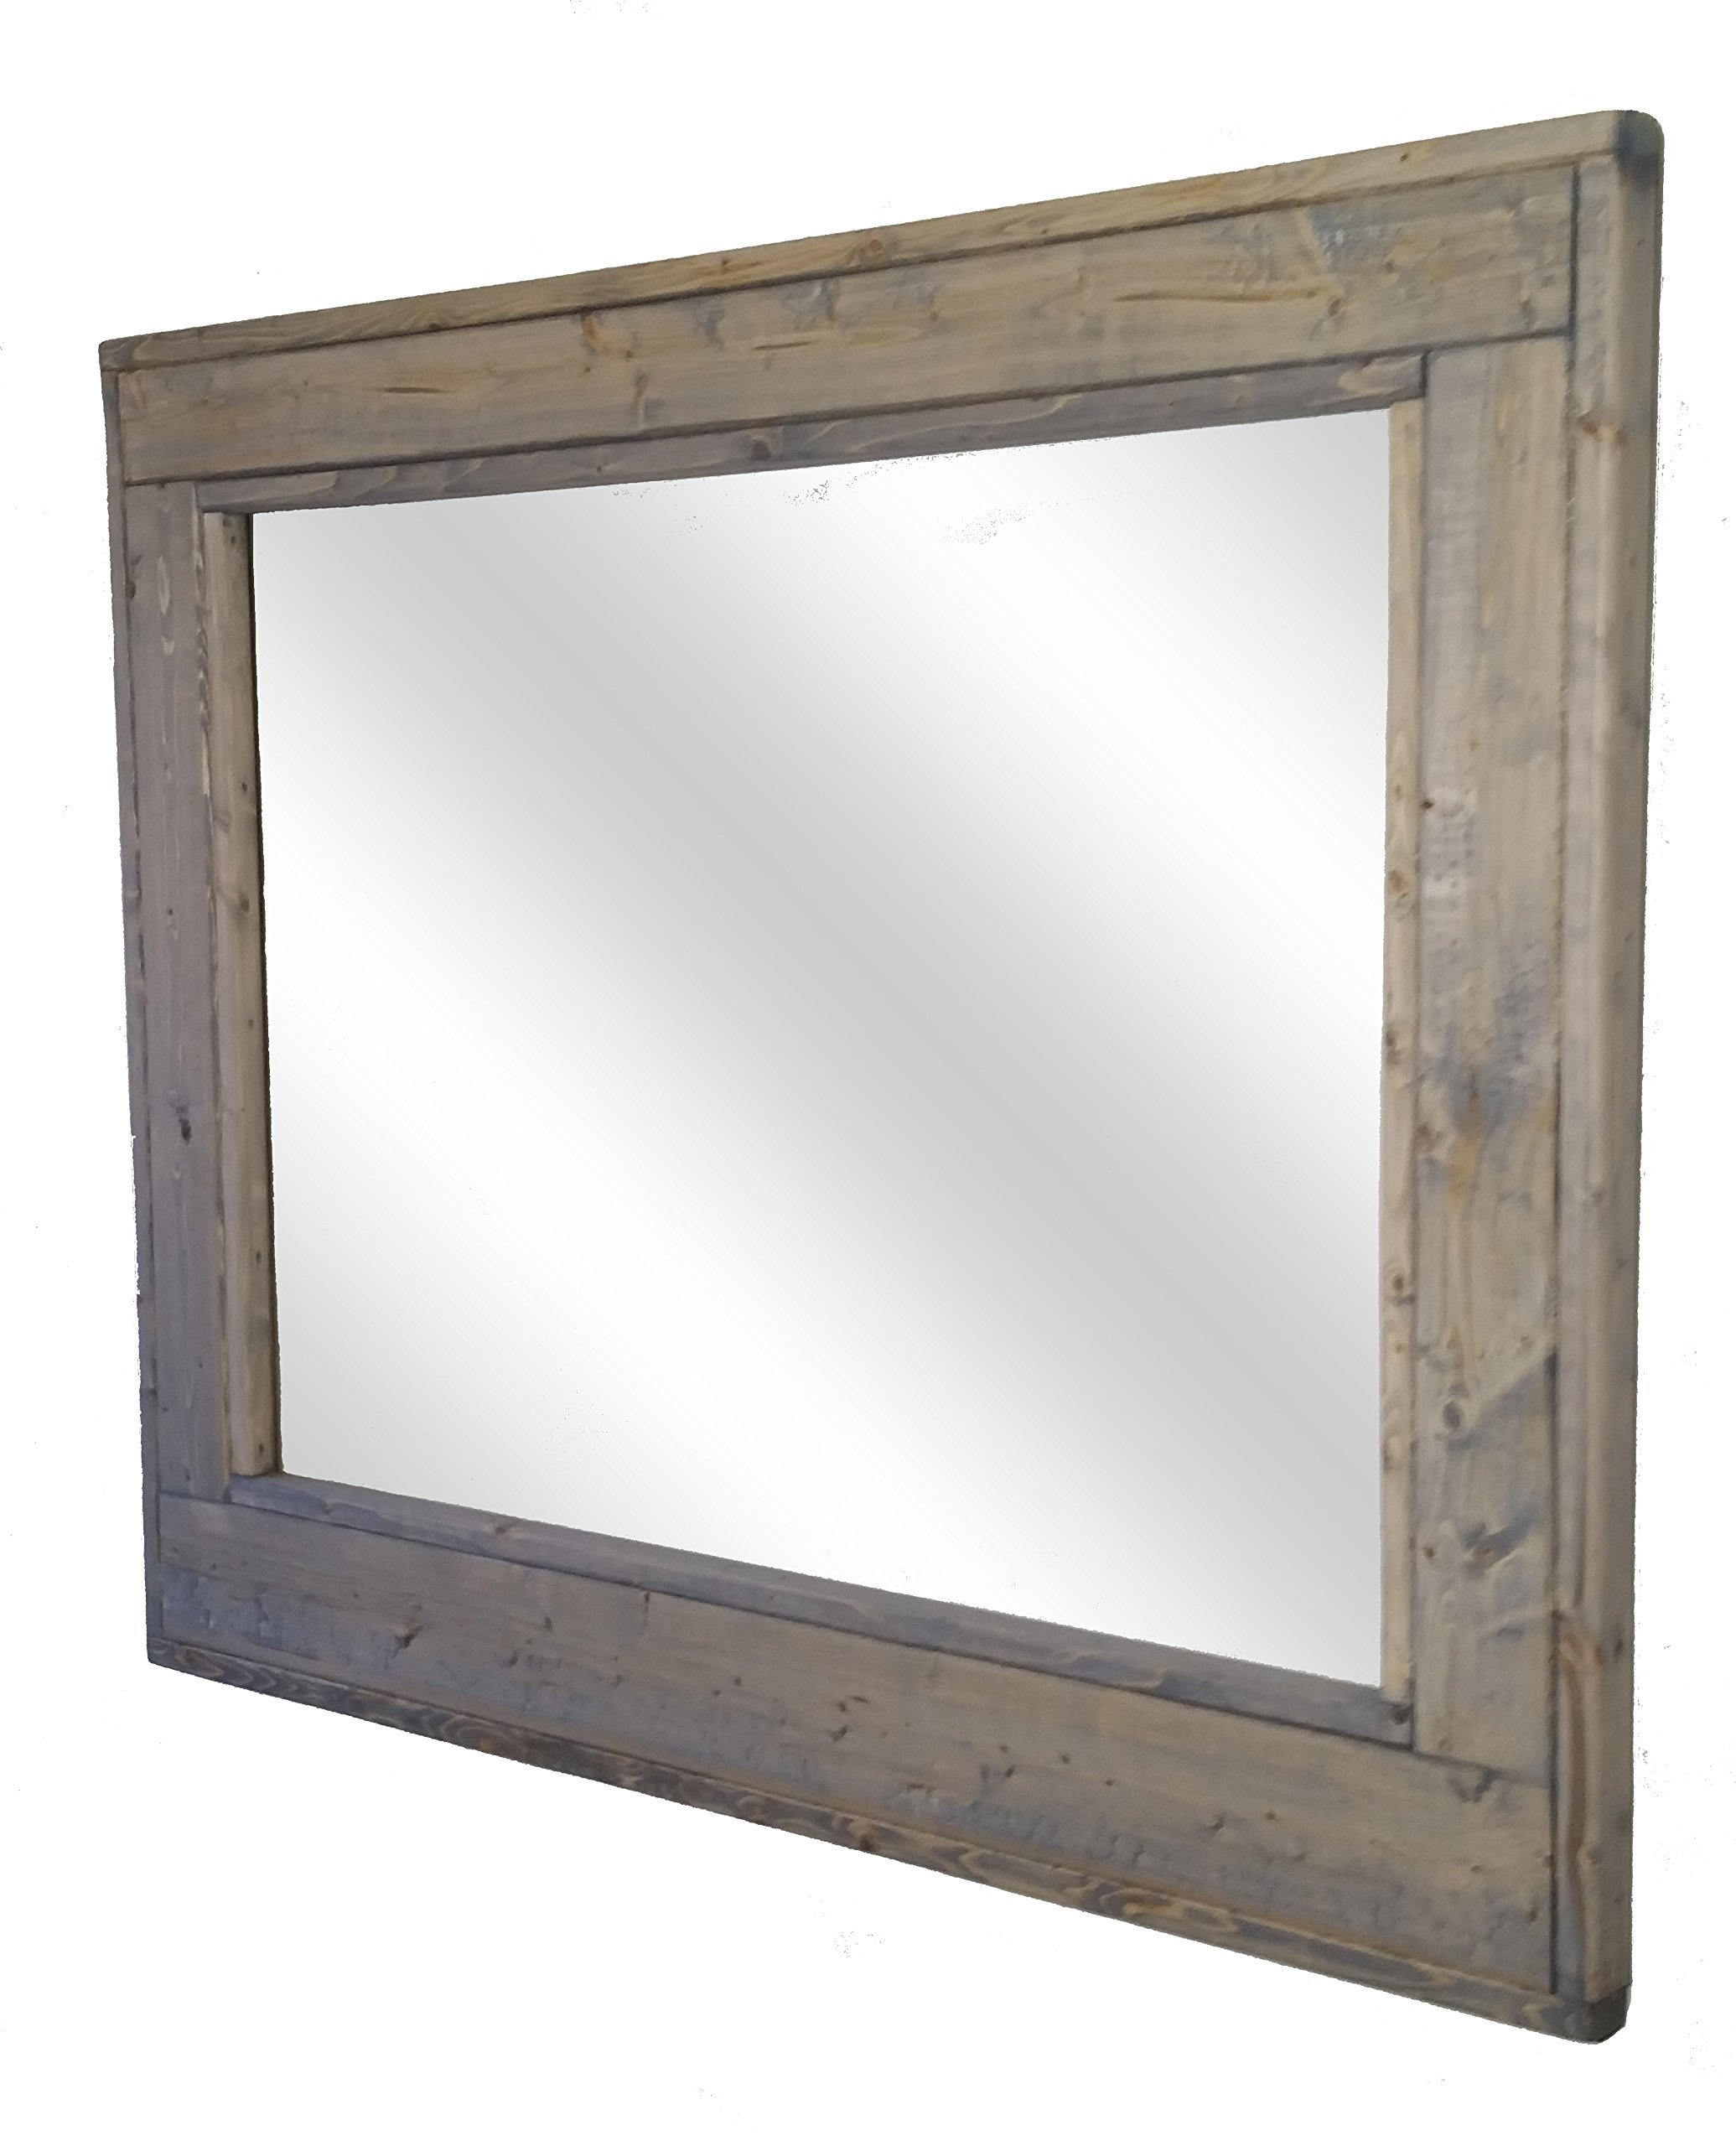 Herringbone 36 x 30 Horizontal Framed Mirror Stained in Weathered Oak - Reclaimed Wood Mirror - Large Wall Mirror - Rustic Modern Home - Home Decor - Mirror - Housewares by Renewed Decor